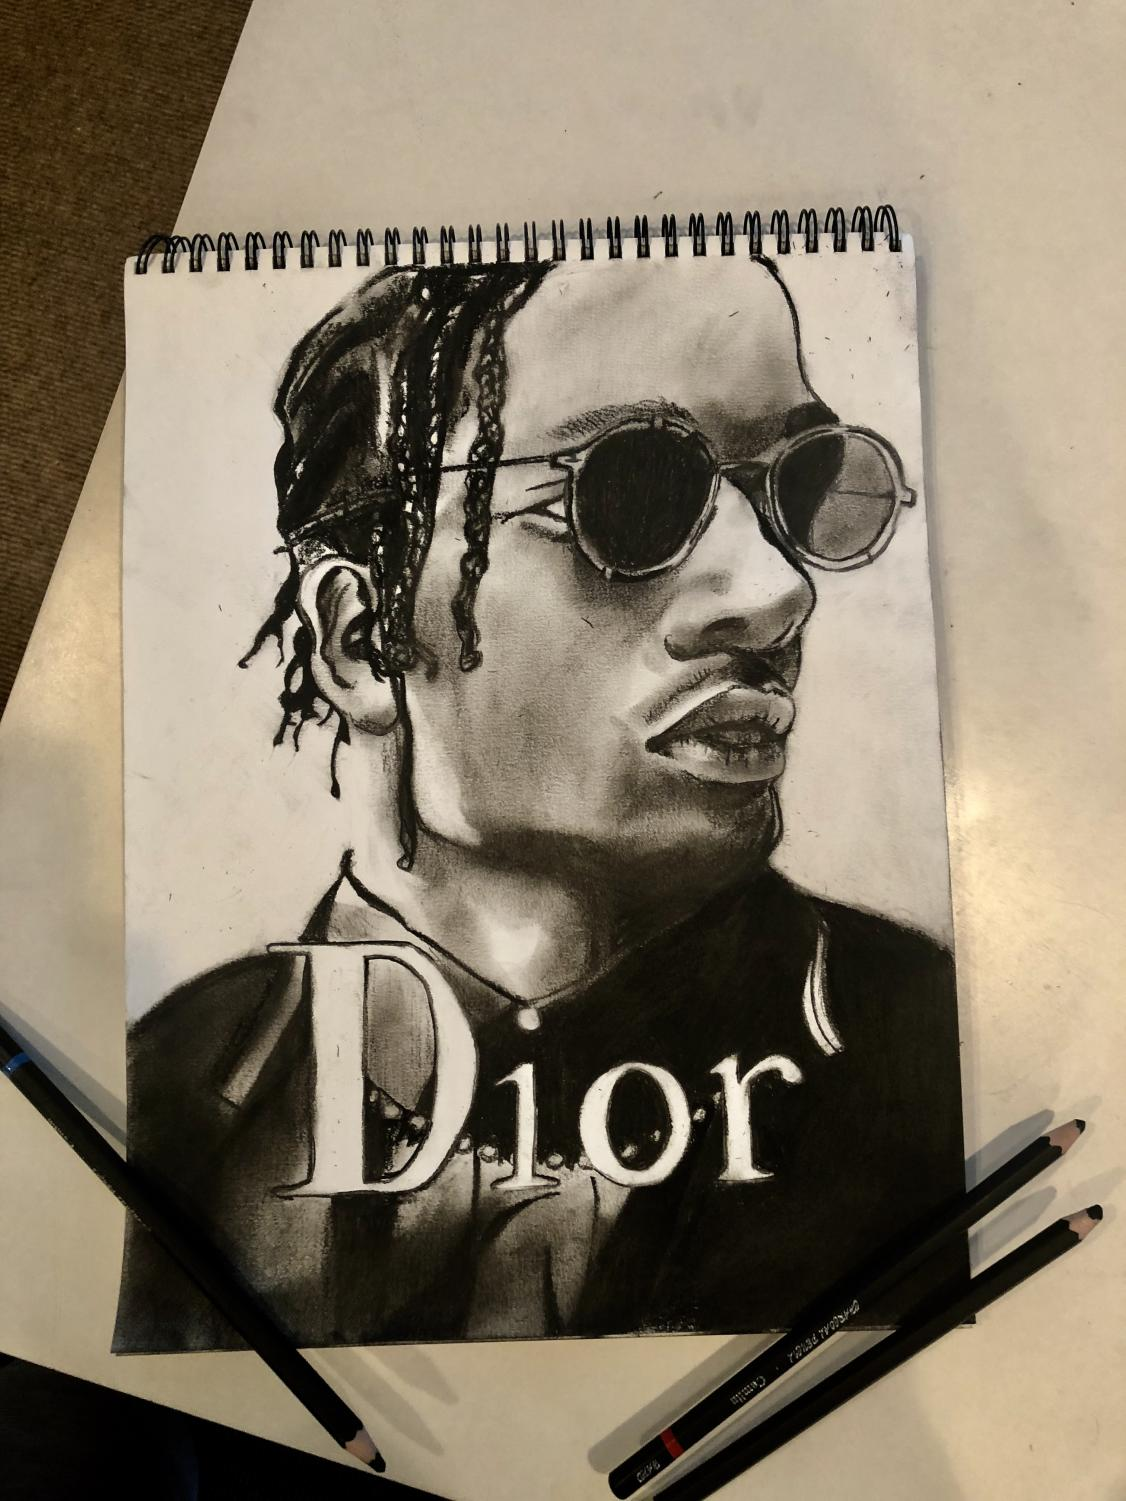 Senior Shree Sane channels artistic talents through a charcoal drawing of A$AP Rocky.